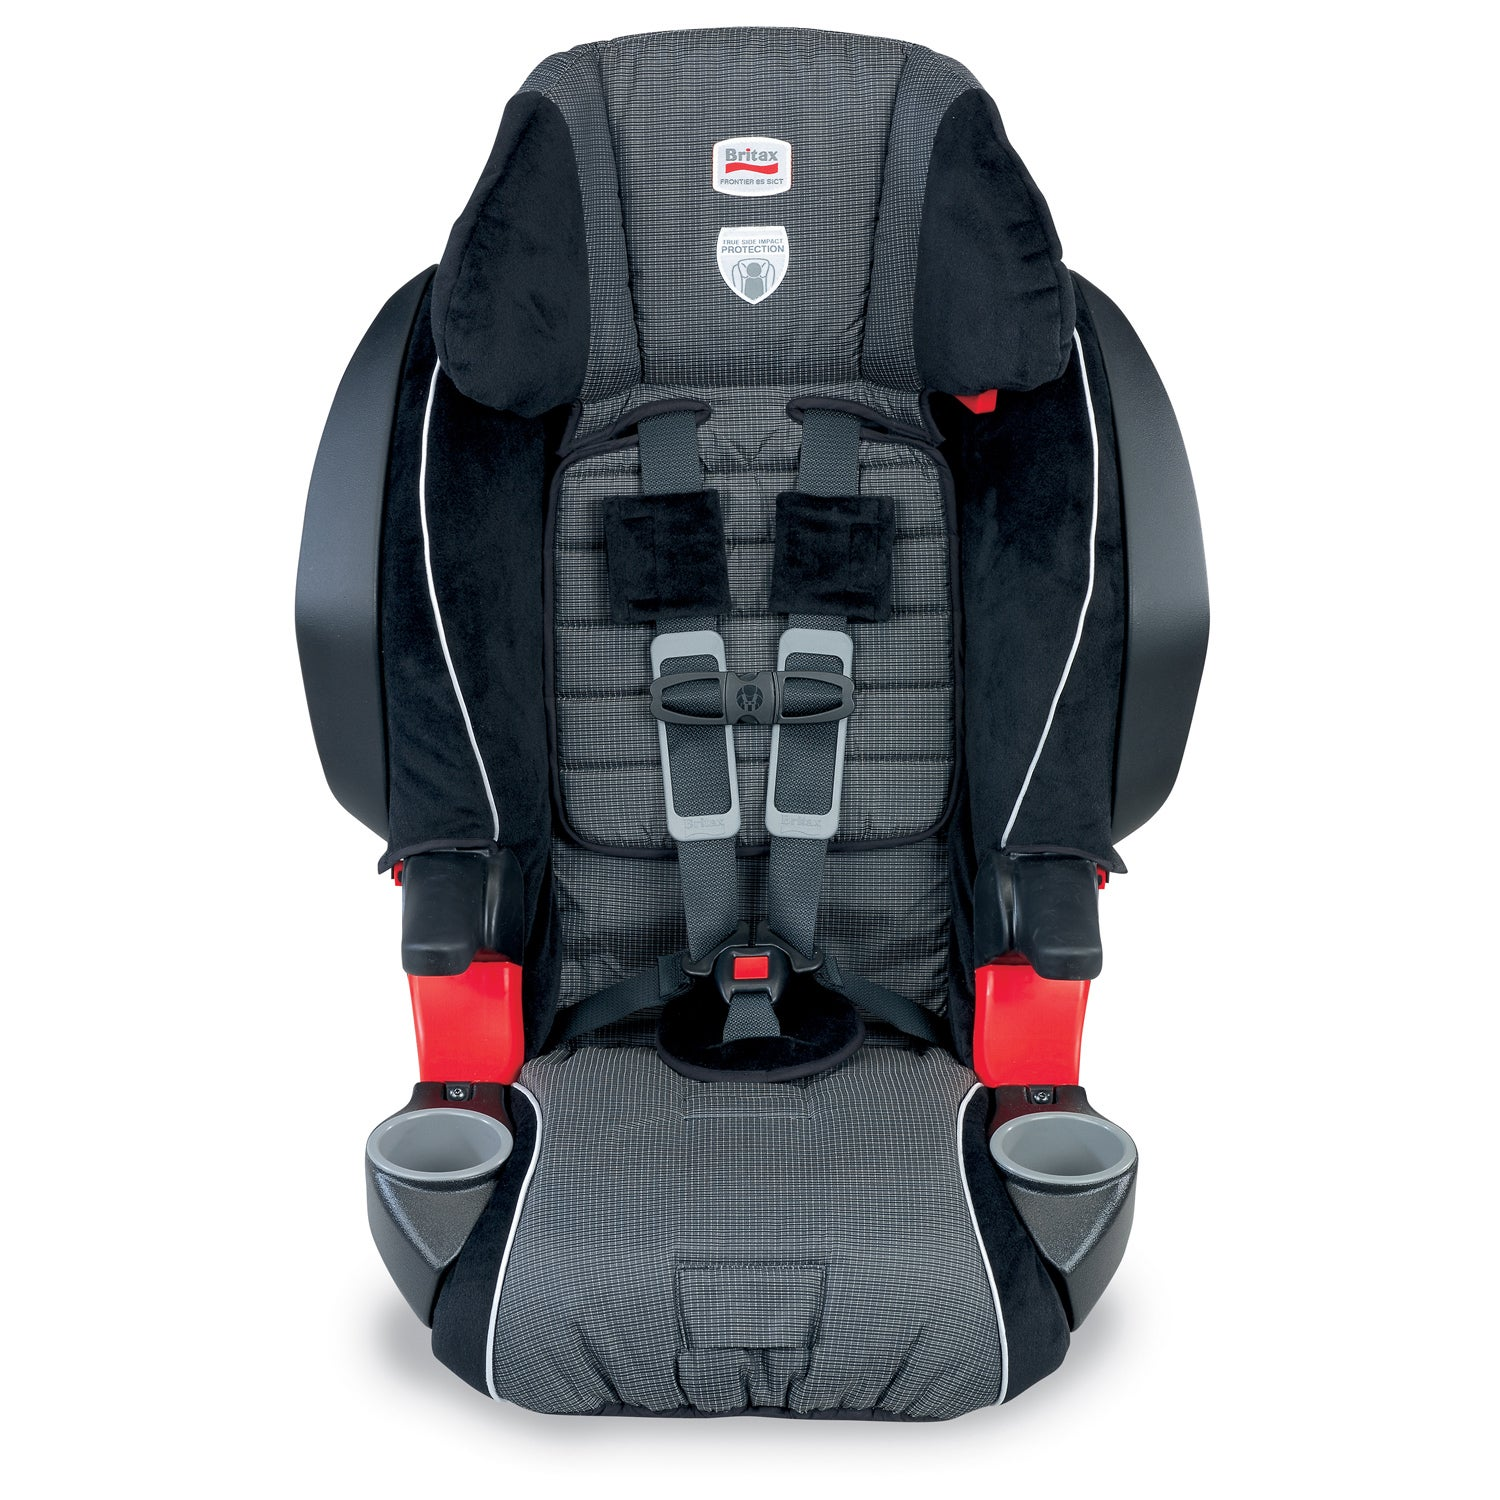 Britax Frontier 85 SICT Harness-2-Booster Car Seat in Onyx